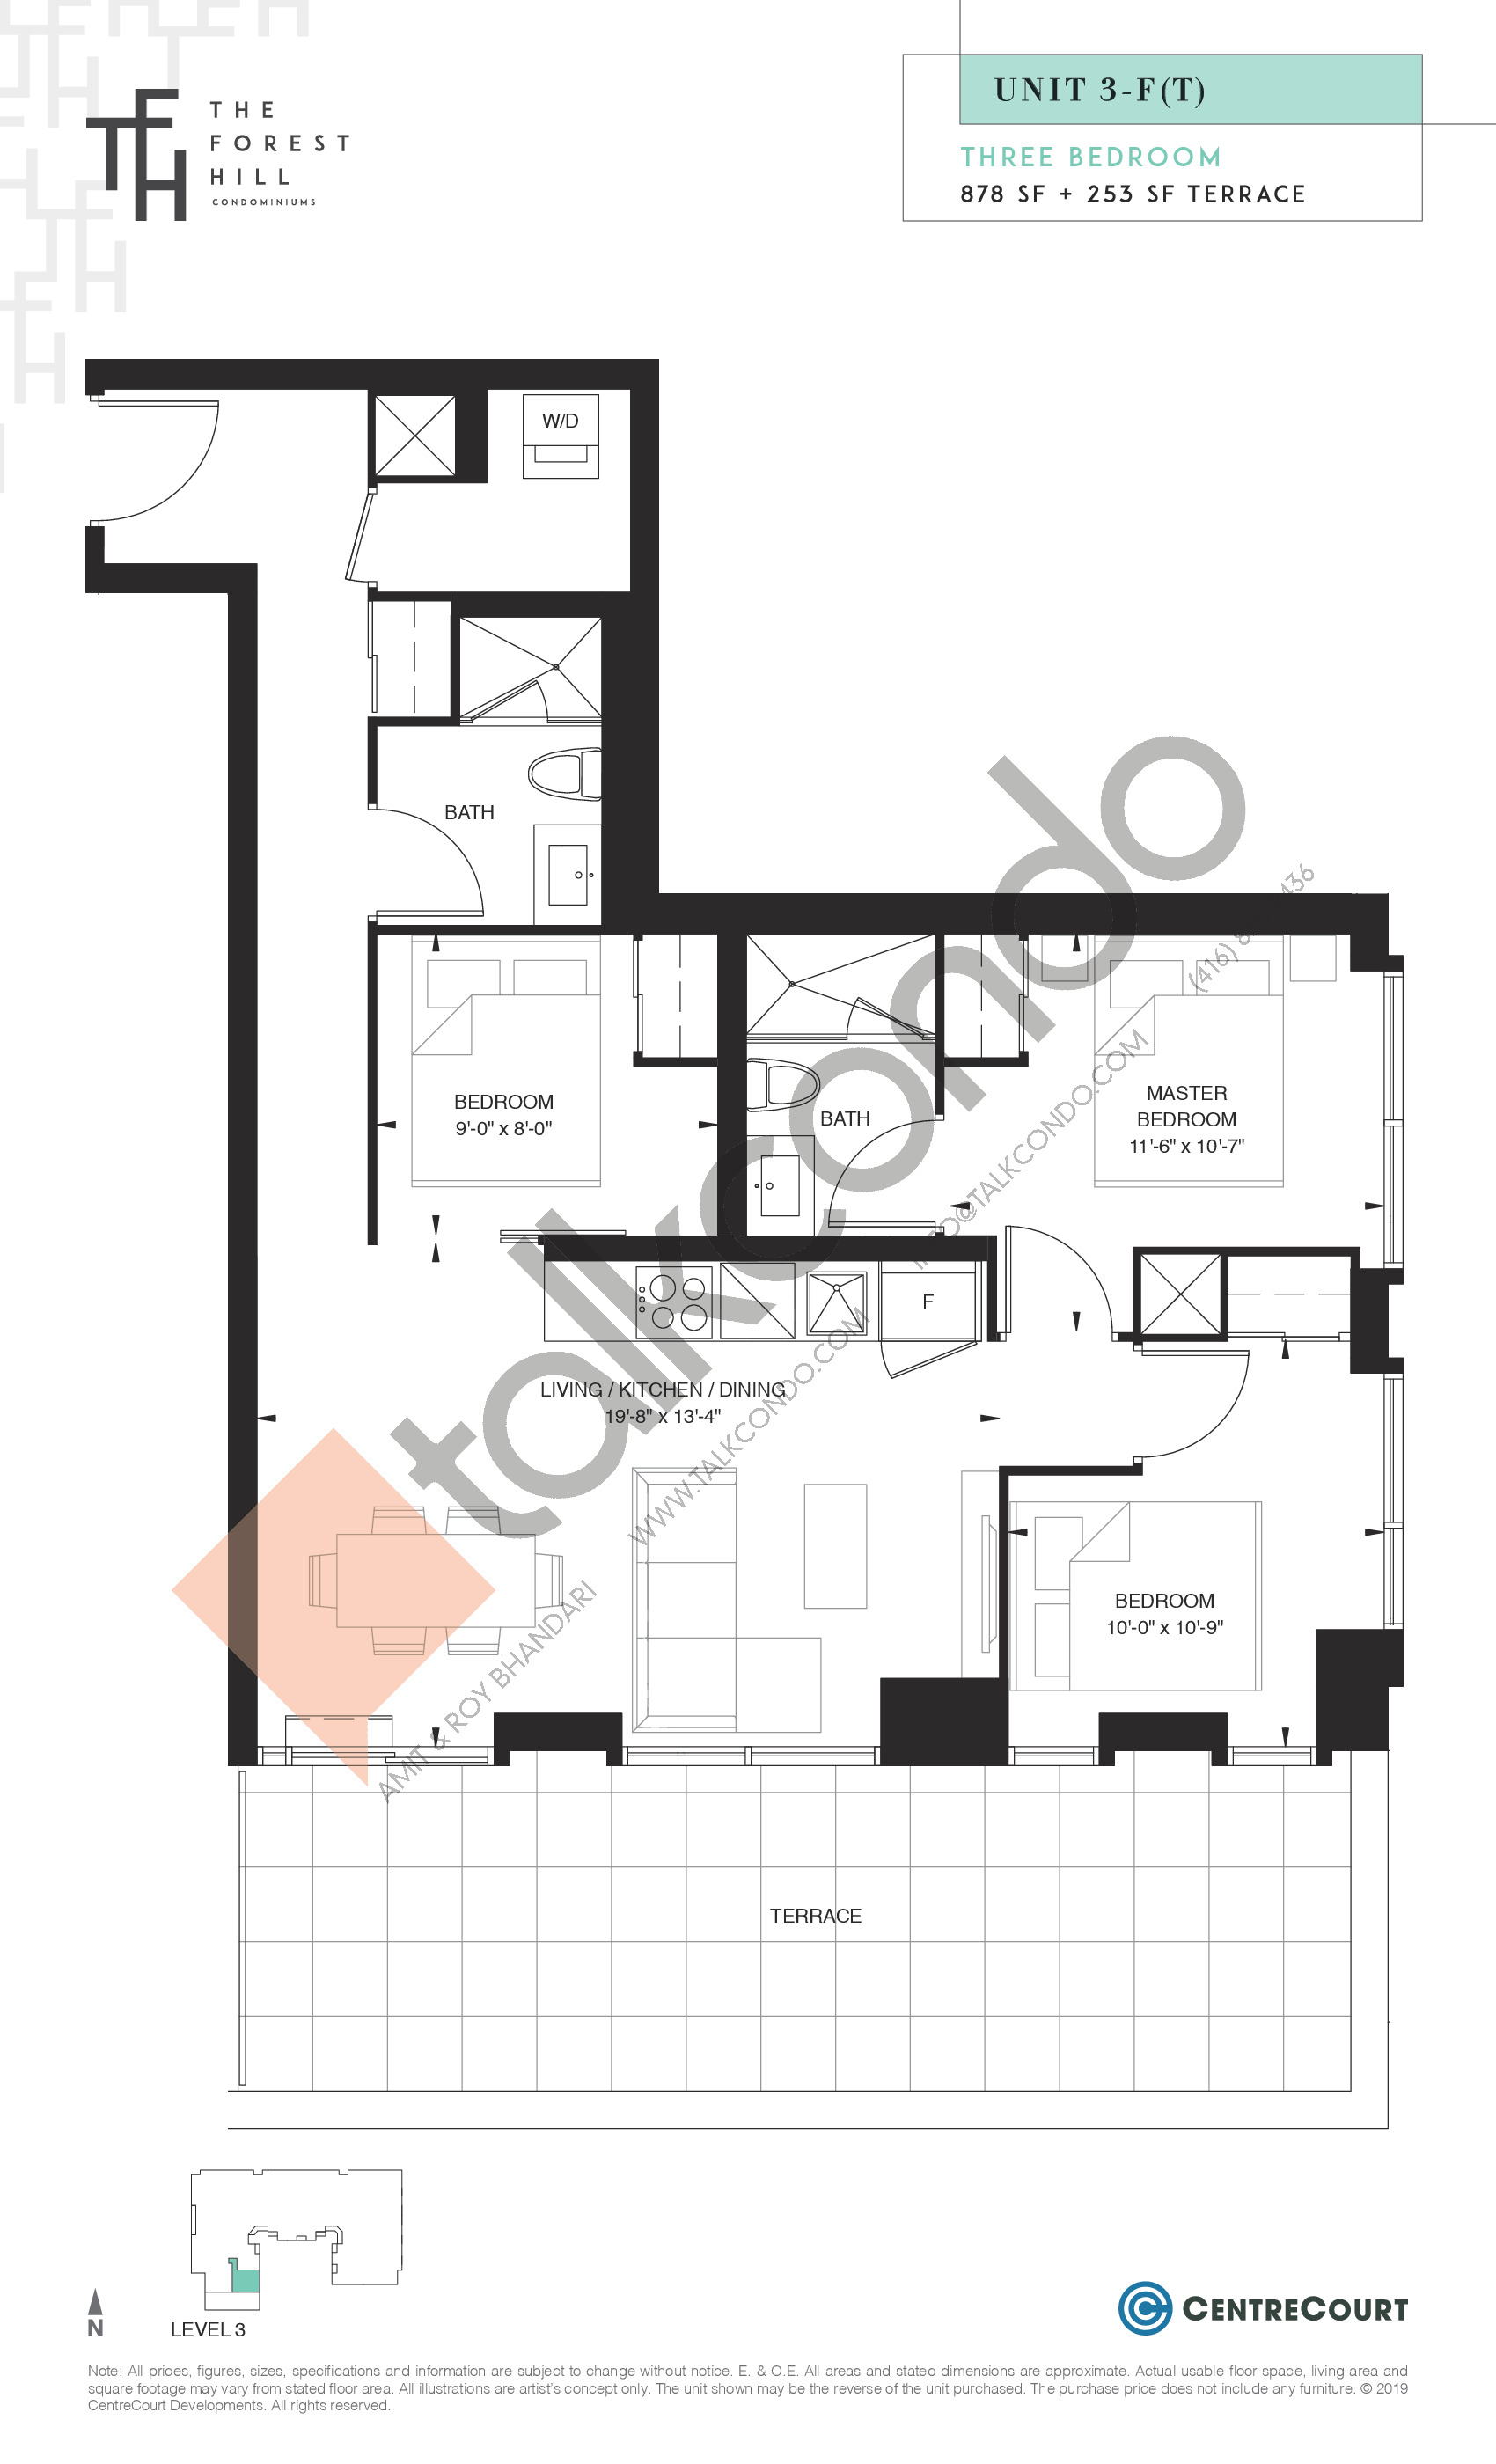 Unit 3-F(T) Floor Plan at The Forest Hill Condos - 878 sq.ft